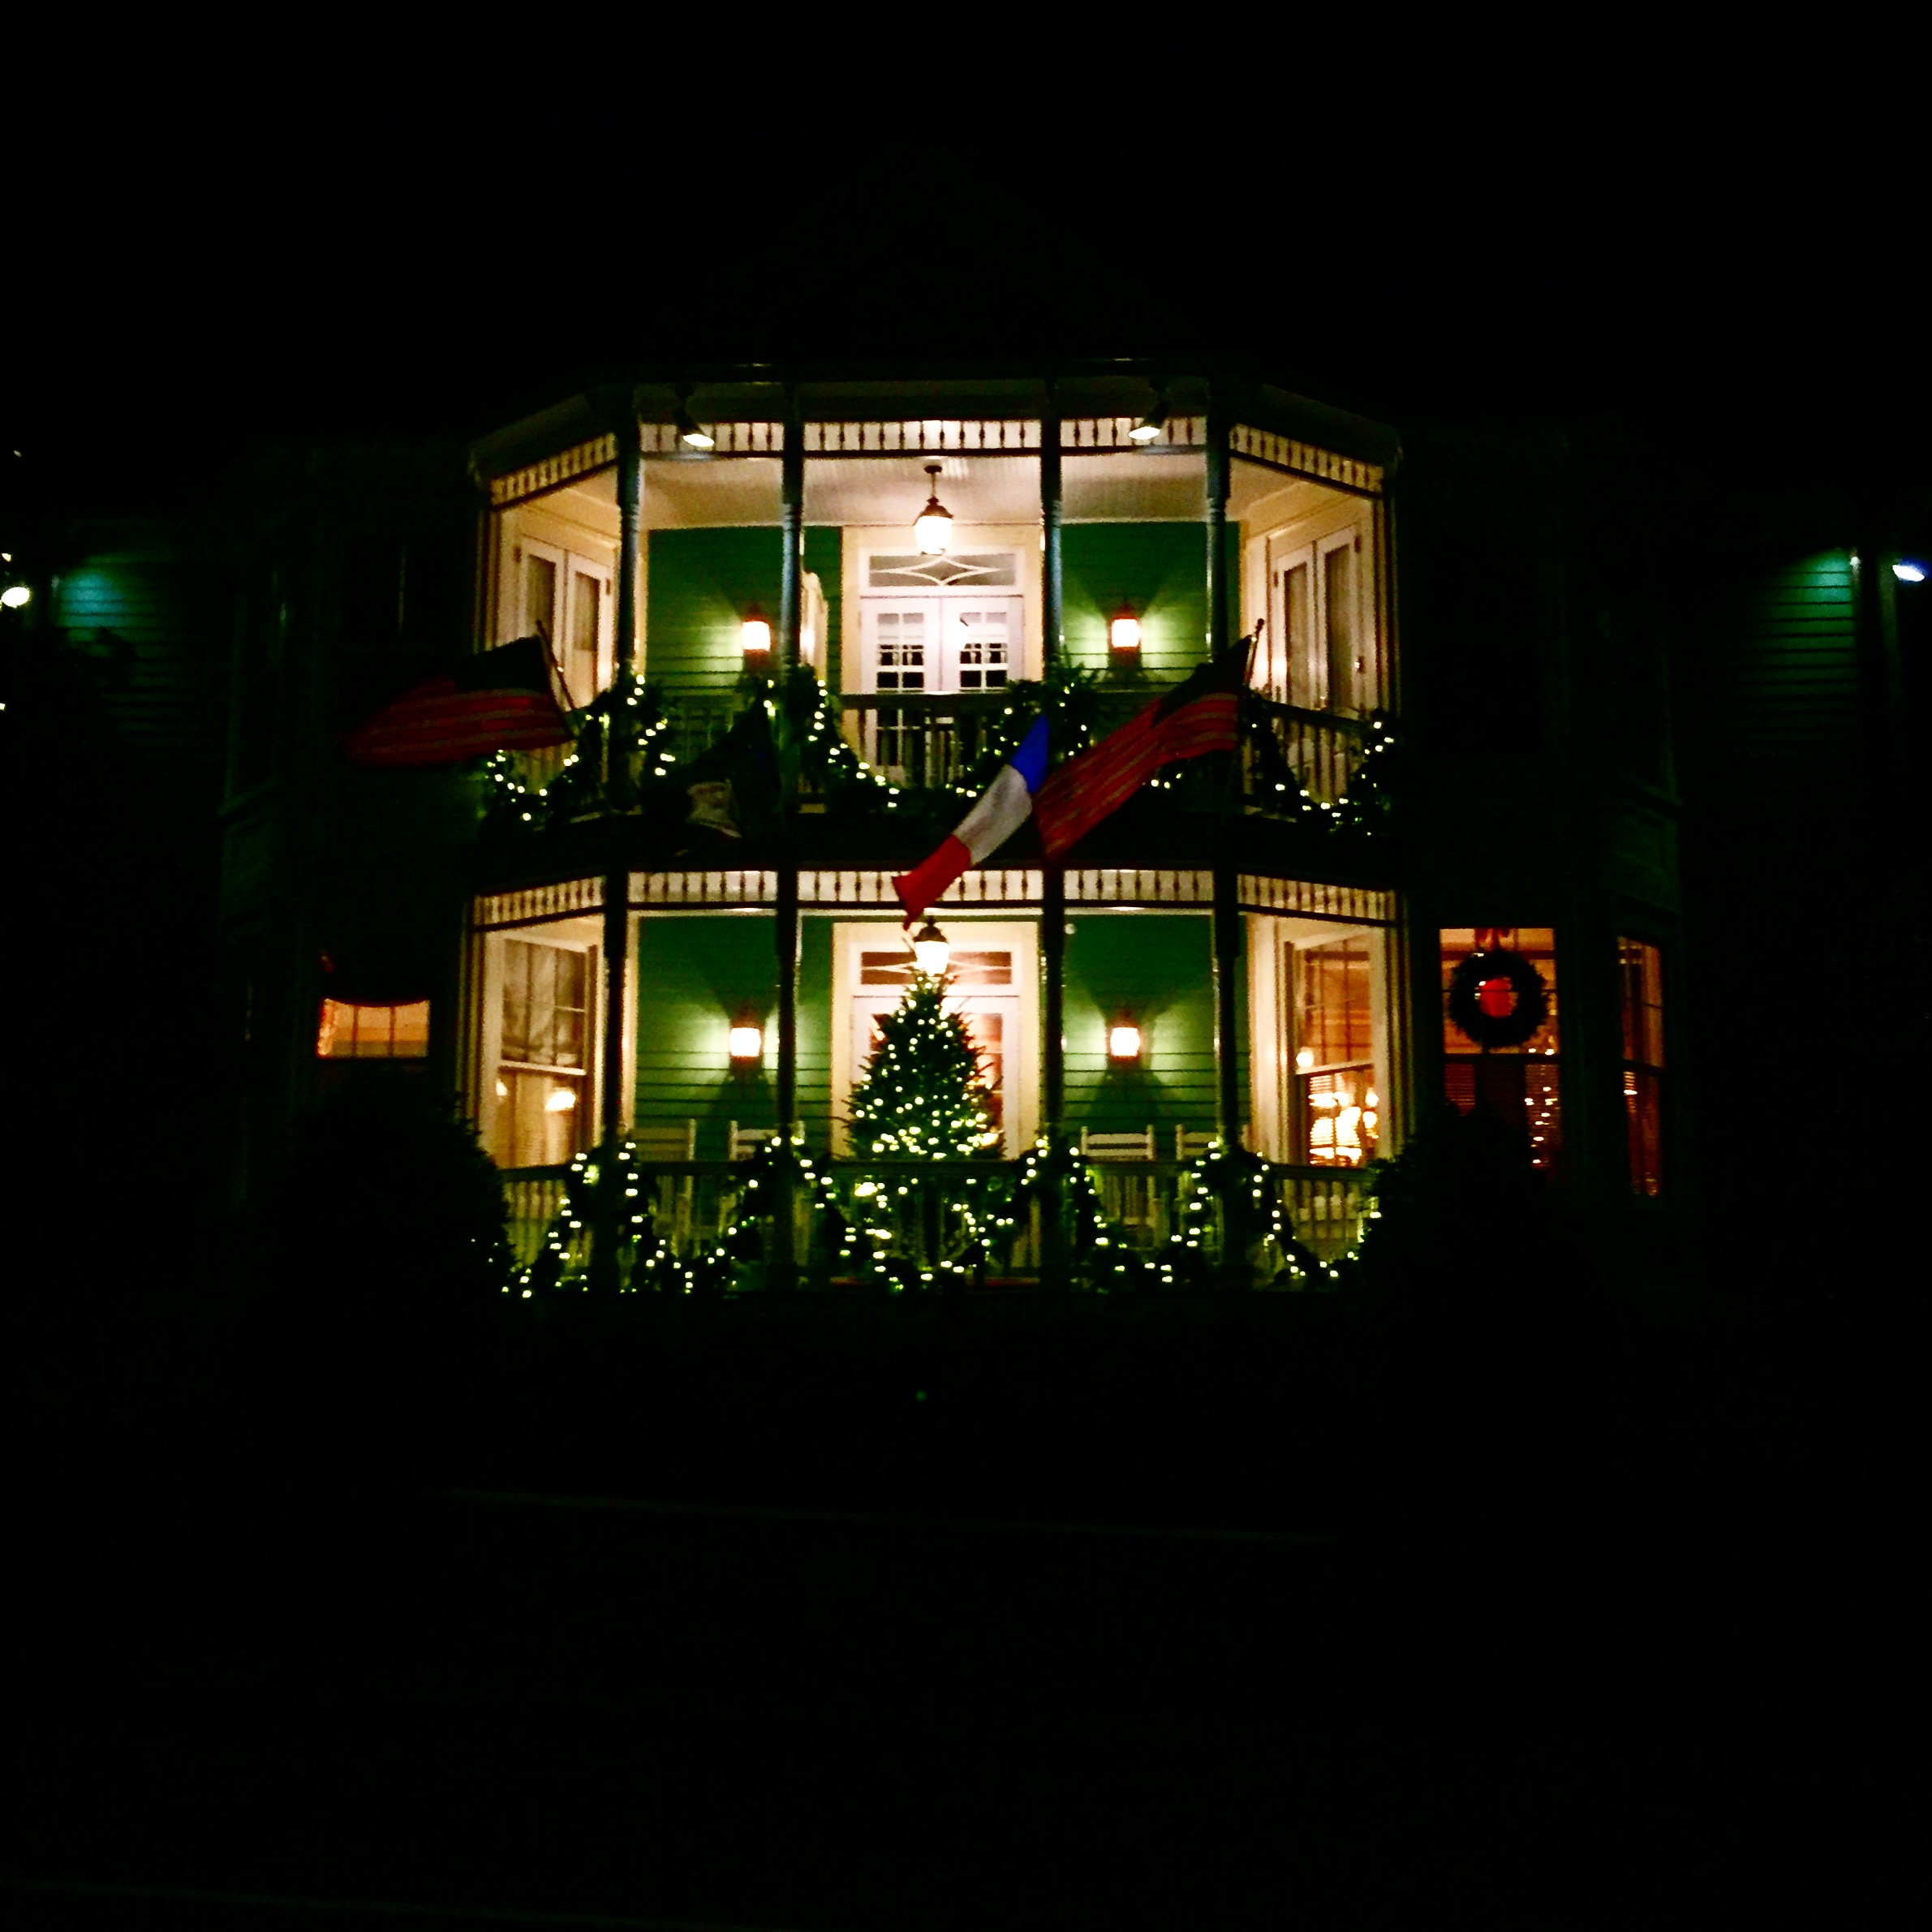 After dinner take an evening stroll around the village of Little Washington and view the festive lights and decorations, decking two homes above